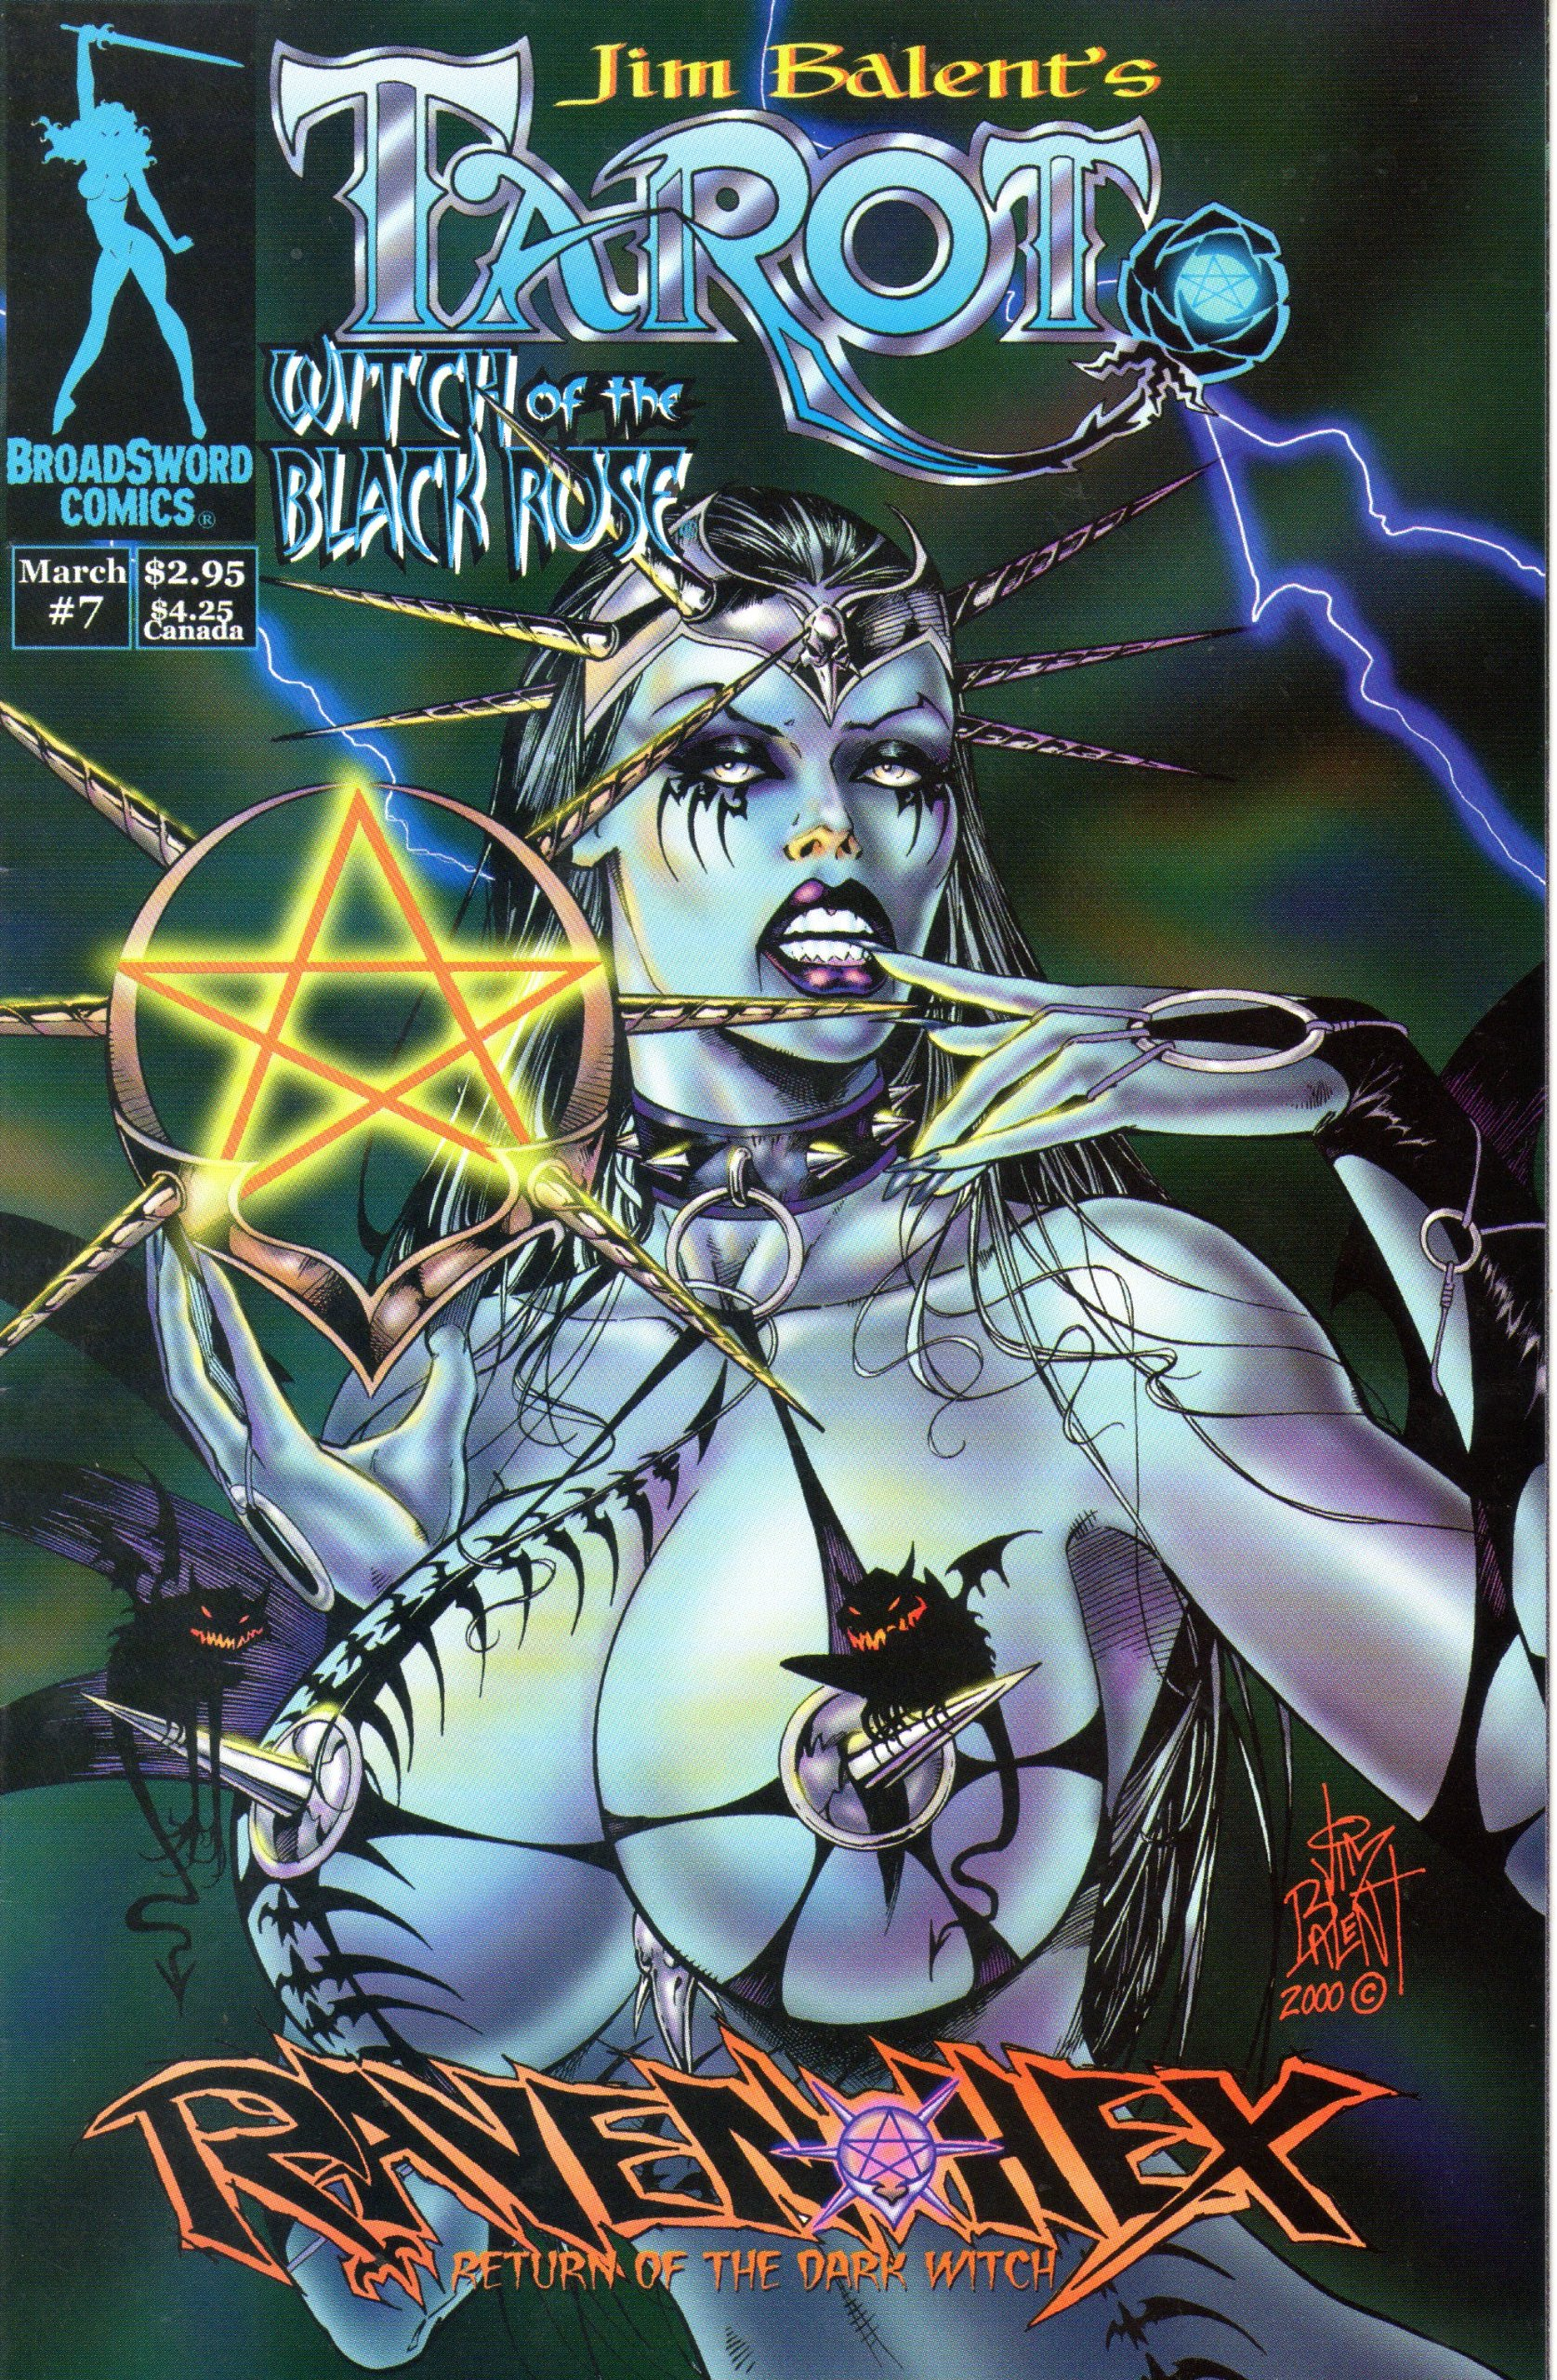 Download Tarot Witch of the Black Rose #7 Jim Balent Cover ebook